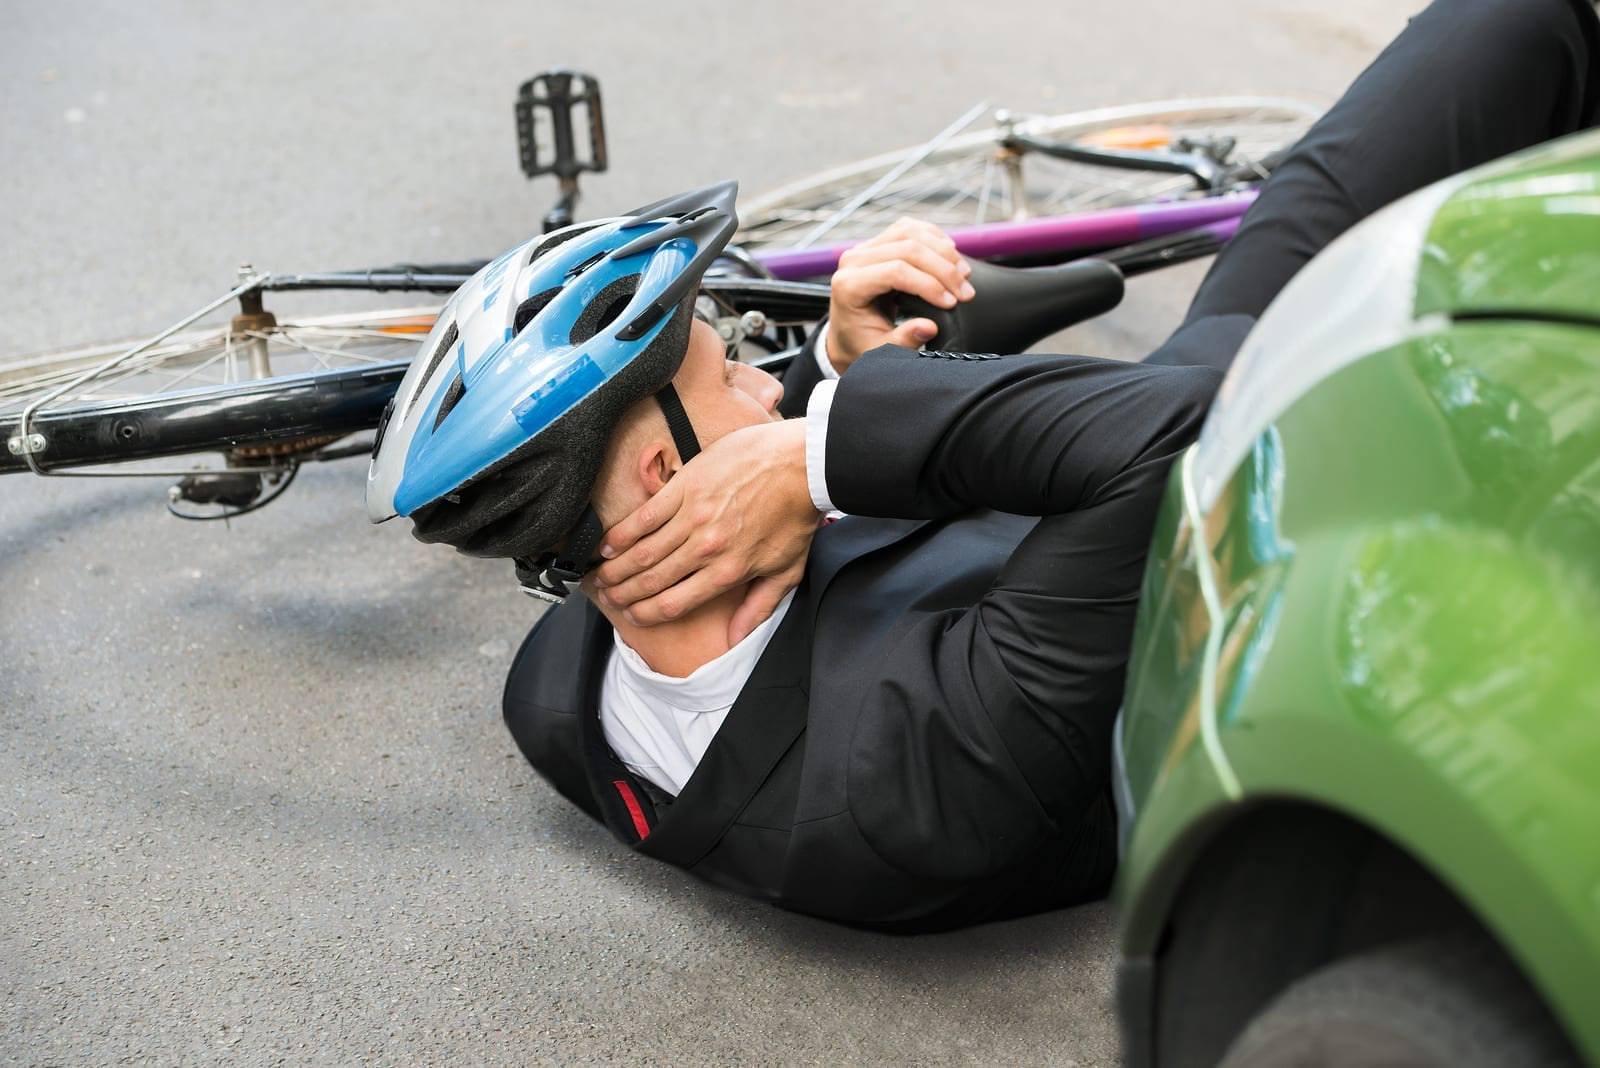 Injured In Accident When A Car Accident Aggravates Existing Injuries